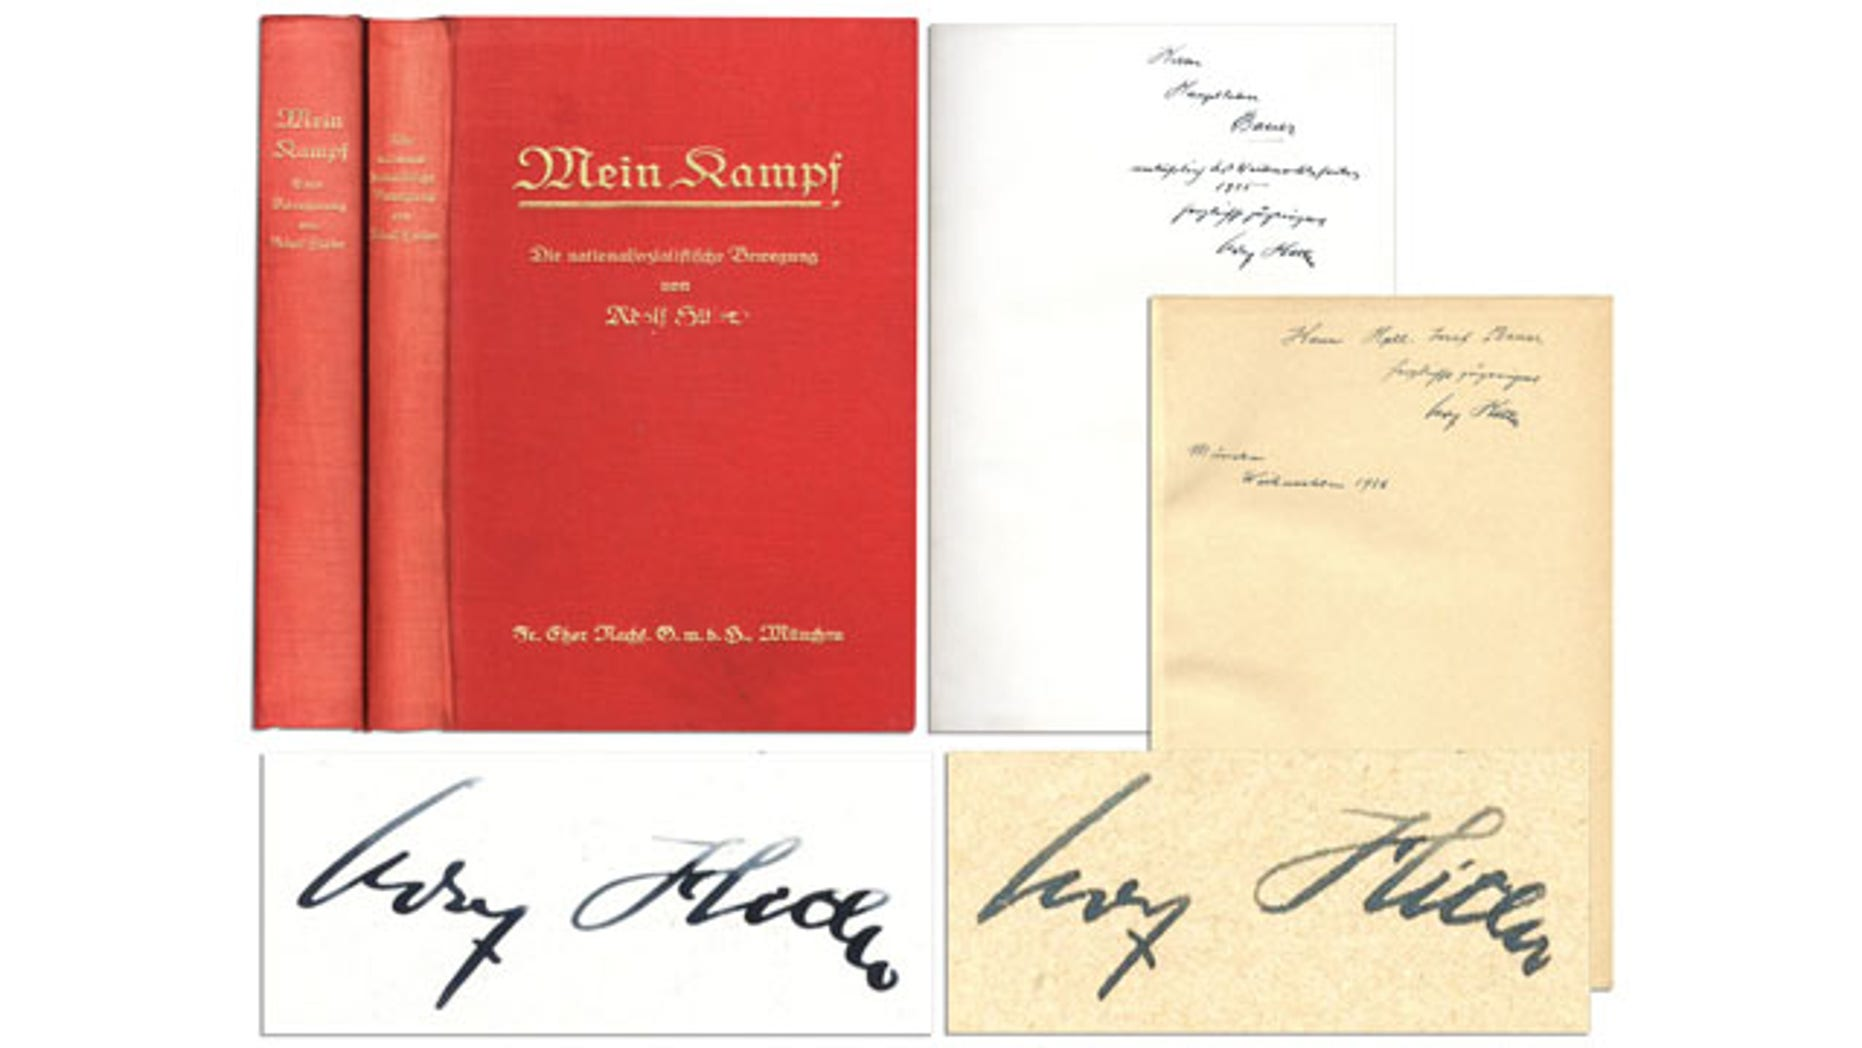 """This undated image provided by Nate D. Sanders Auction shows the Adolph Hitler inscribed """"Mein Kampf"""" volume to future SS leader Joseph Bauer. The signed two-volume set of """"Mein Kampf"""", the manifesto of the future Fuhrer will be auctioned by Nate D. Sanders on Thursday, Feb. 27, 2014. Interested bidders may participate in the auction online.  (AP)"""